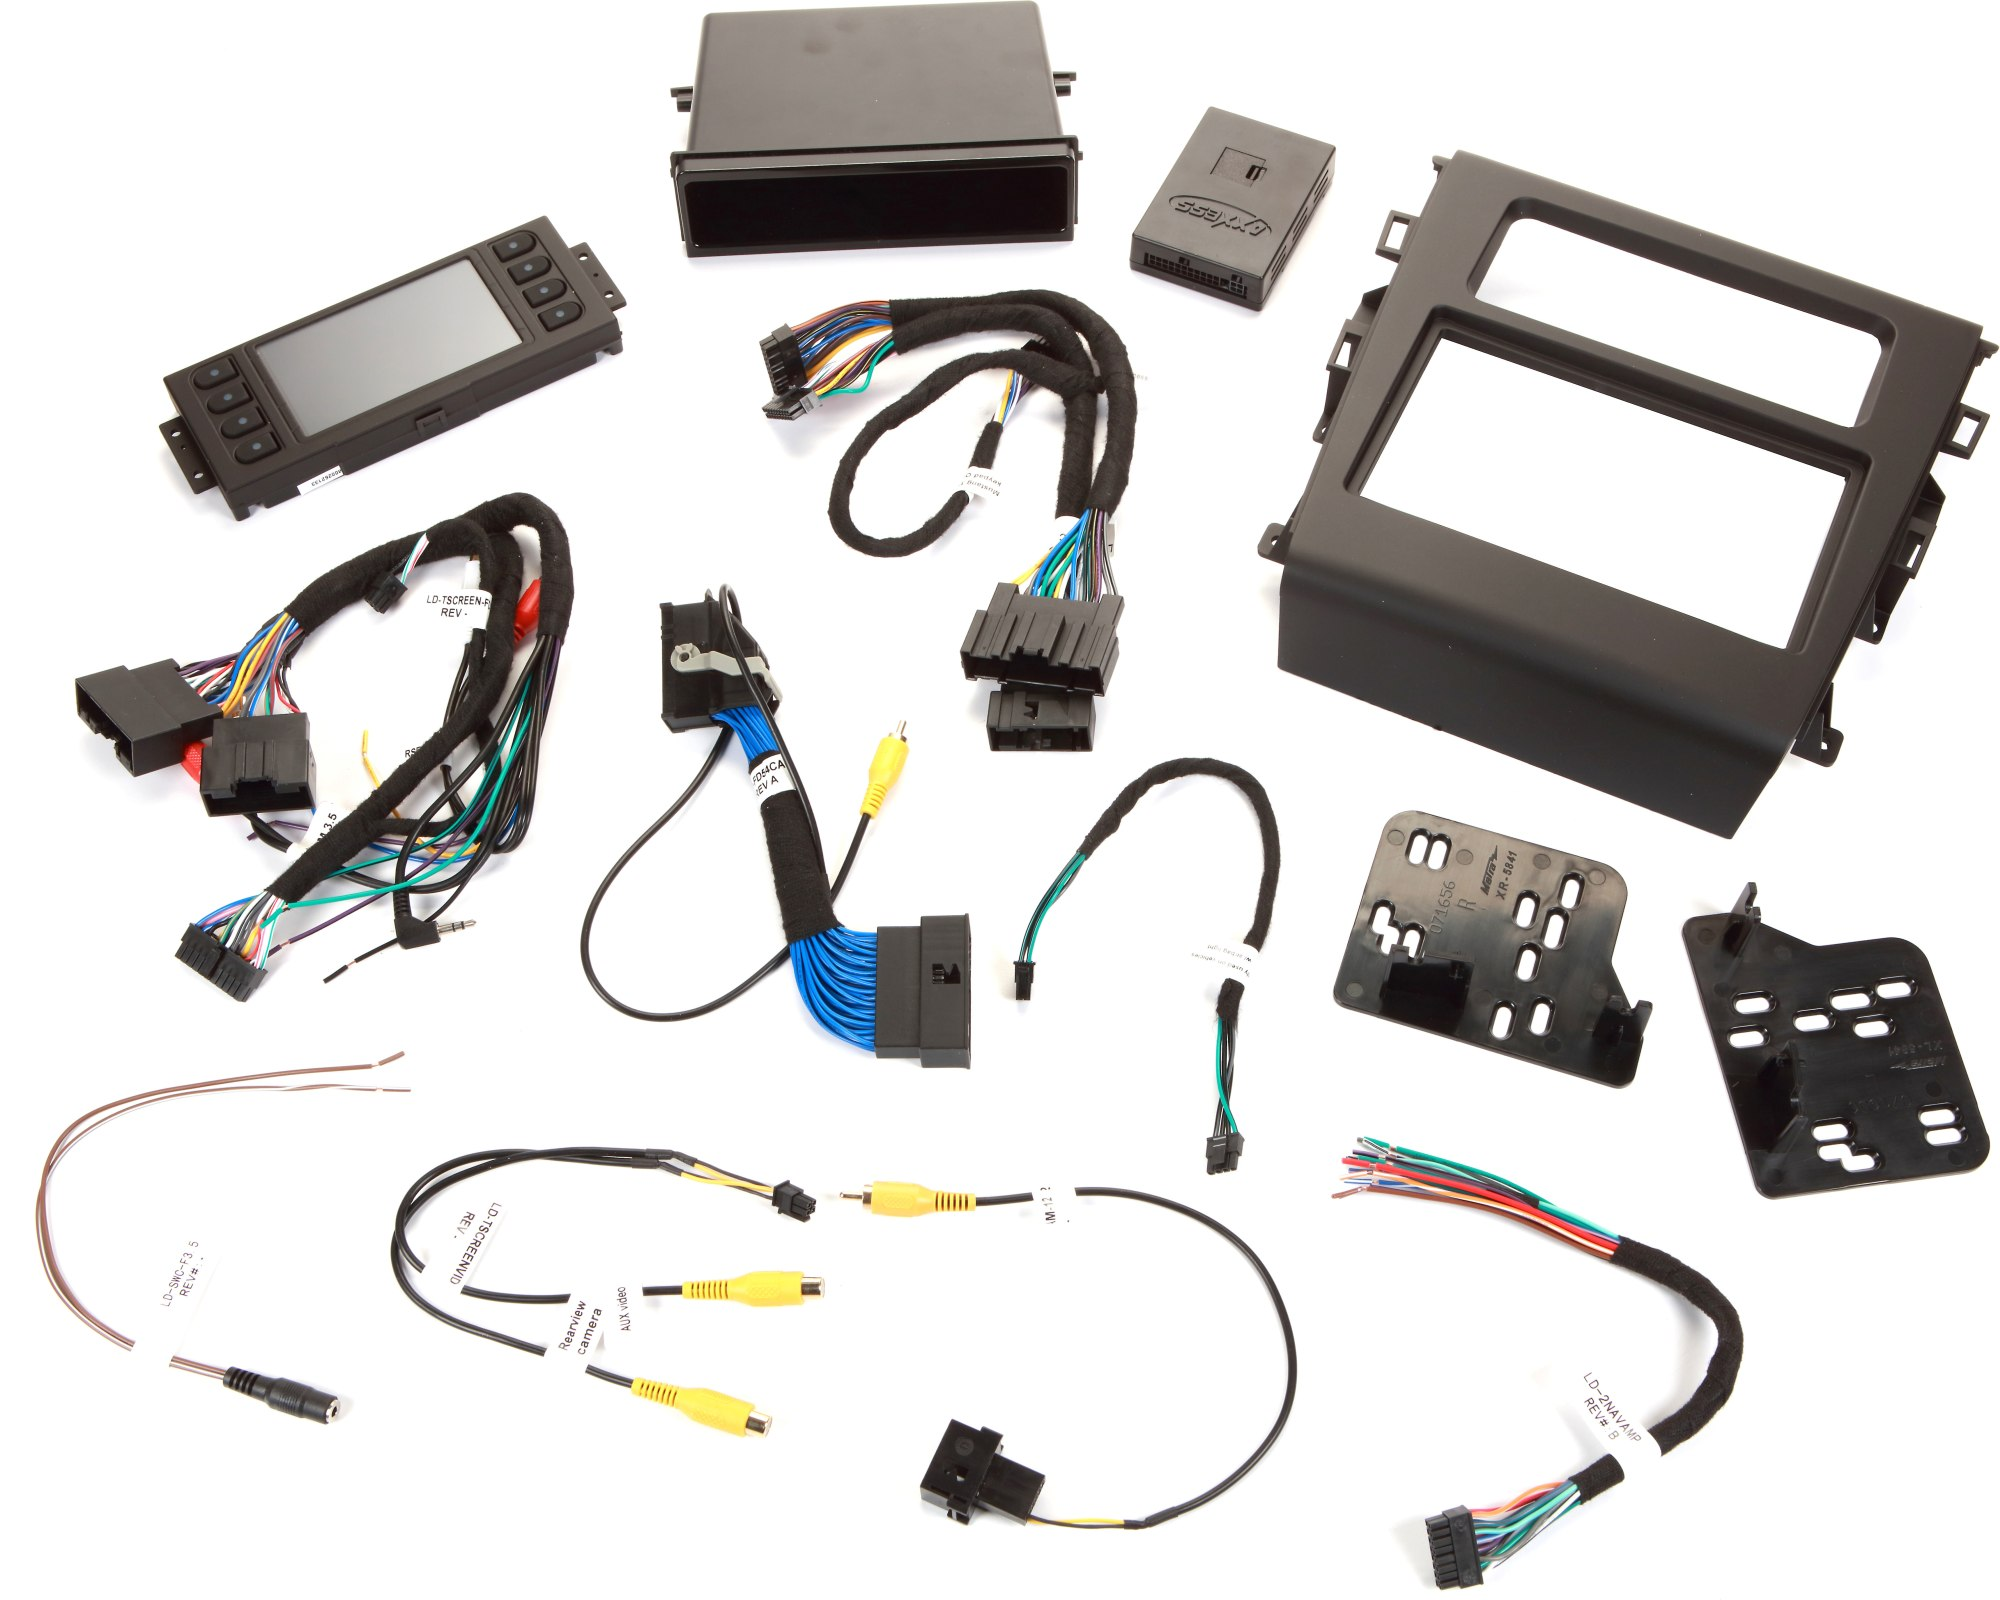 hight resolution of metra 99 5841b dash and wiring kit black install a new car stereo and retain steering wheel and climate controls in select 2013 up ford fusion vehicles